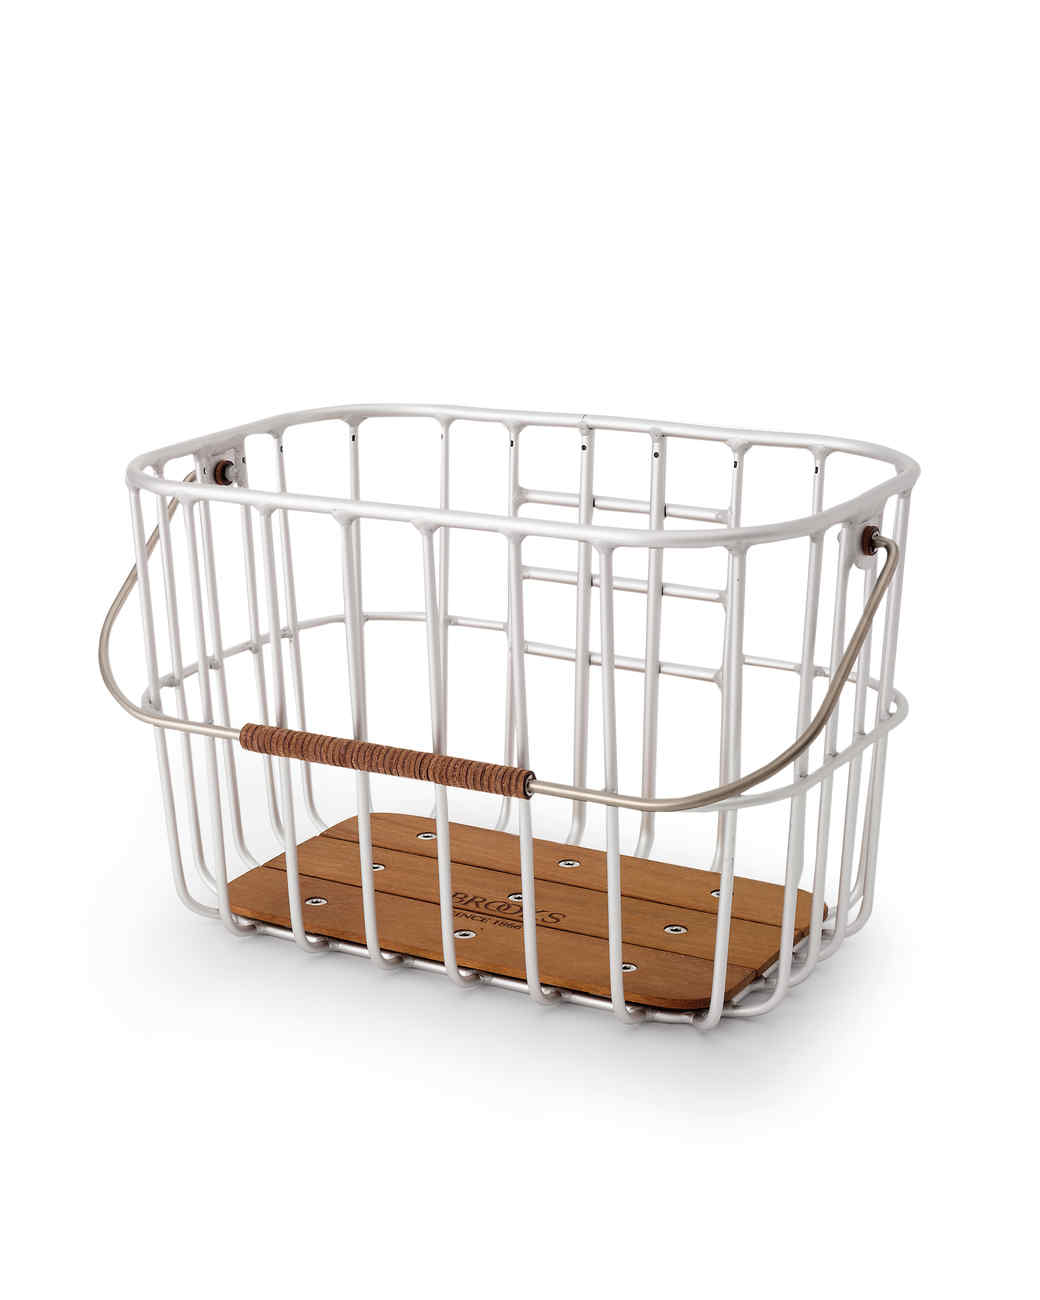 basket-finds-0811mld107422.jpg